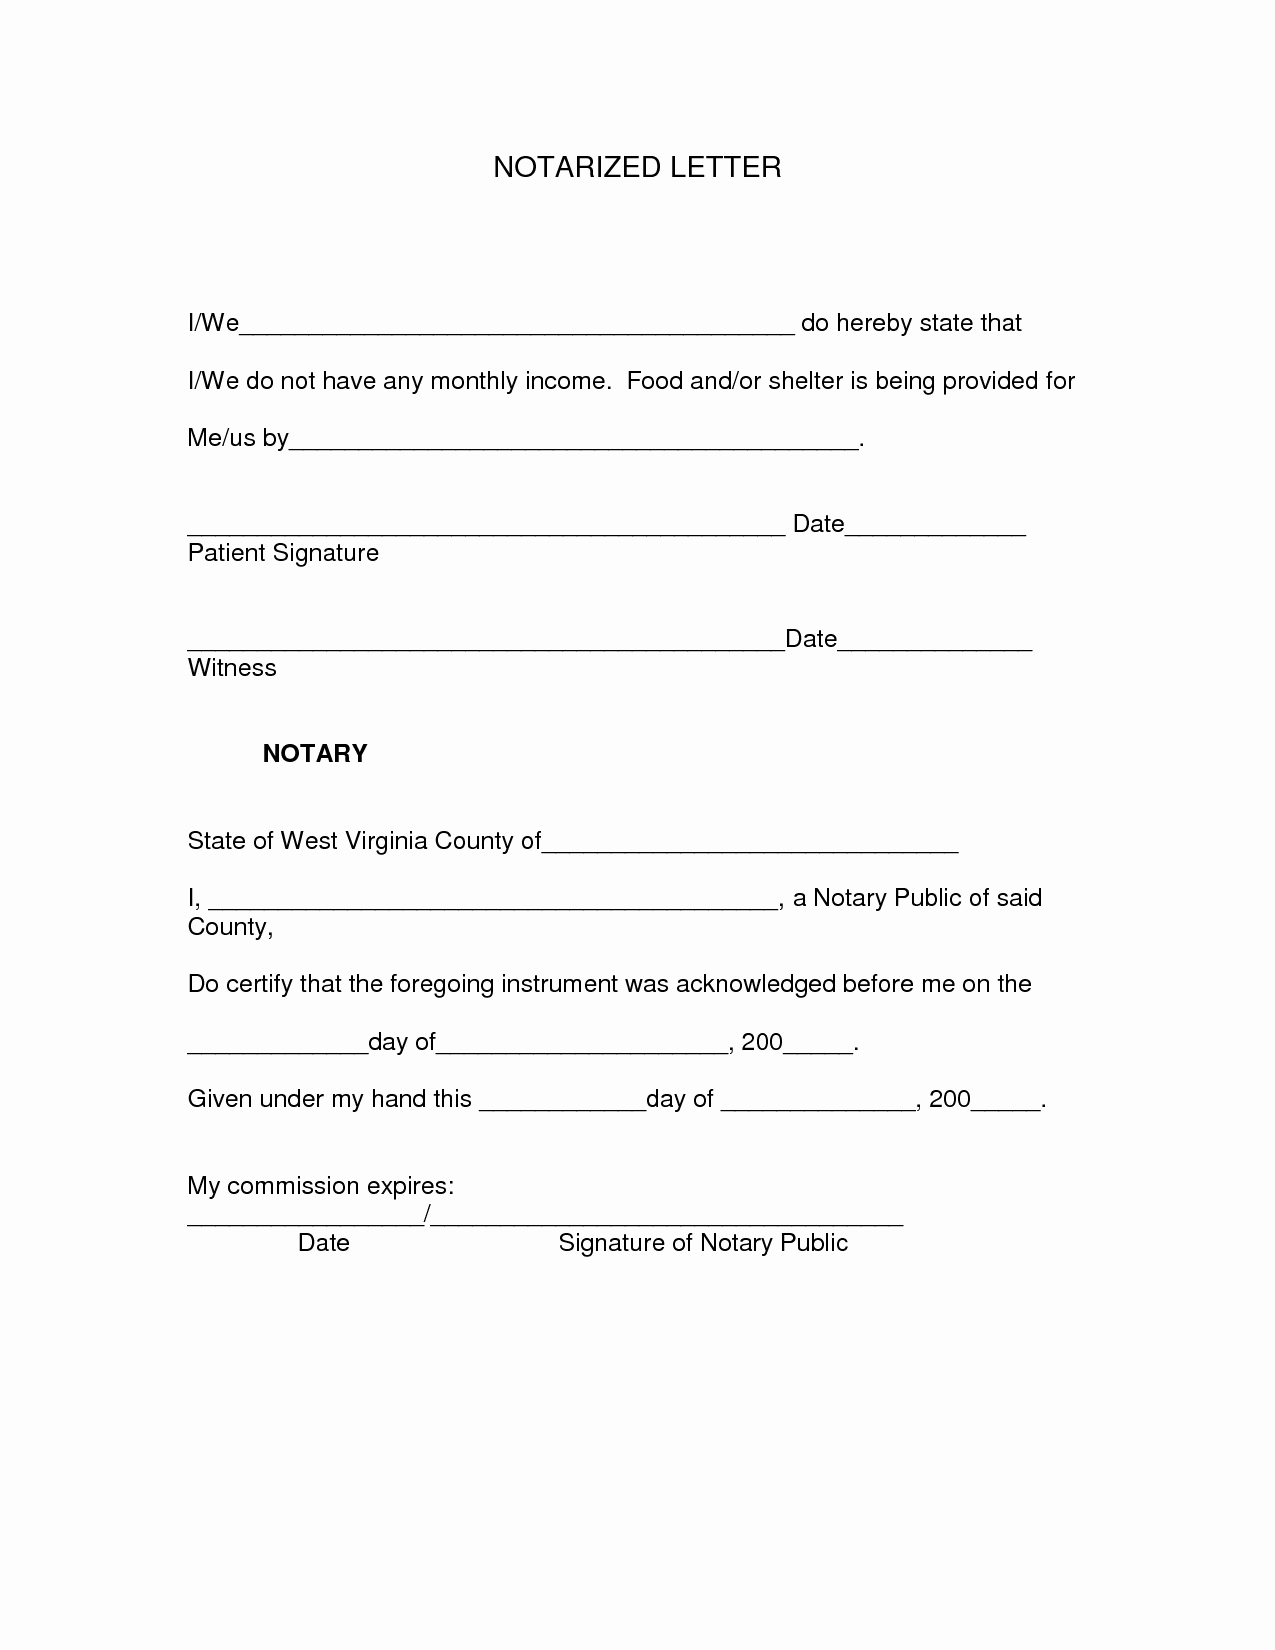 Notarized Letter Template Word Fresh Word Template Category Page 2 Urlspark